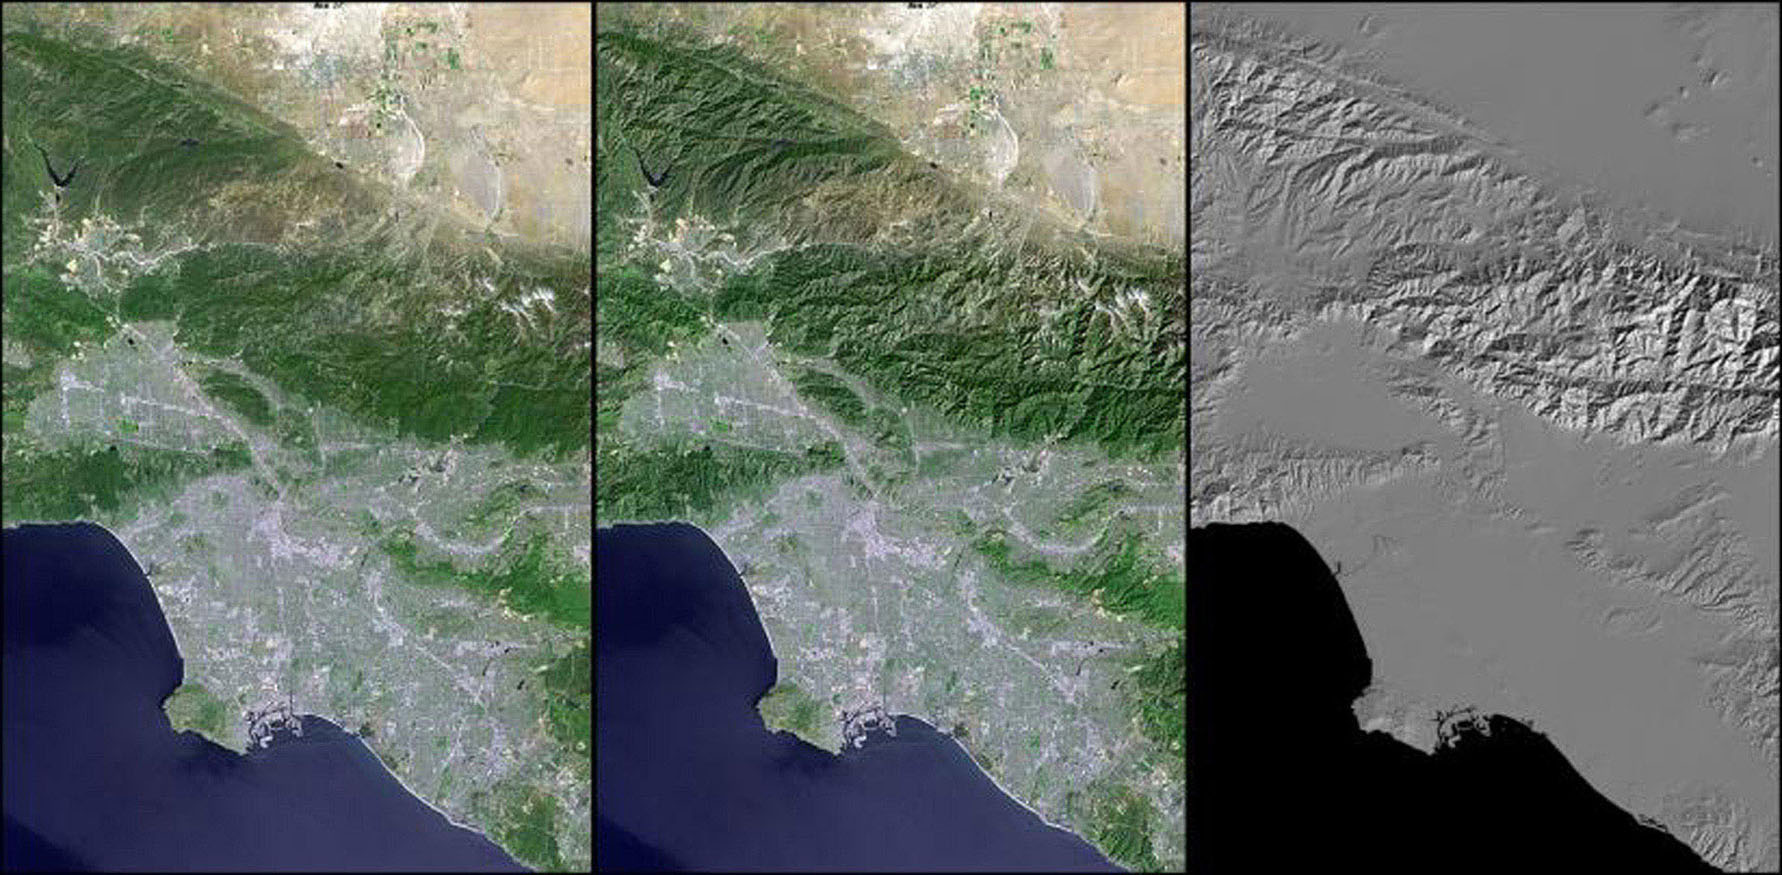 Digital elevation models (DEMs), such as those produced by NASA's Shuttle Radar Topography Mission, allow user-controlled visualization of the Earth's landforms that is not possible using satellite imagery alone.